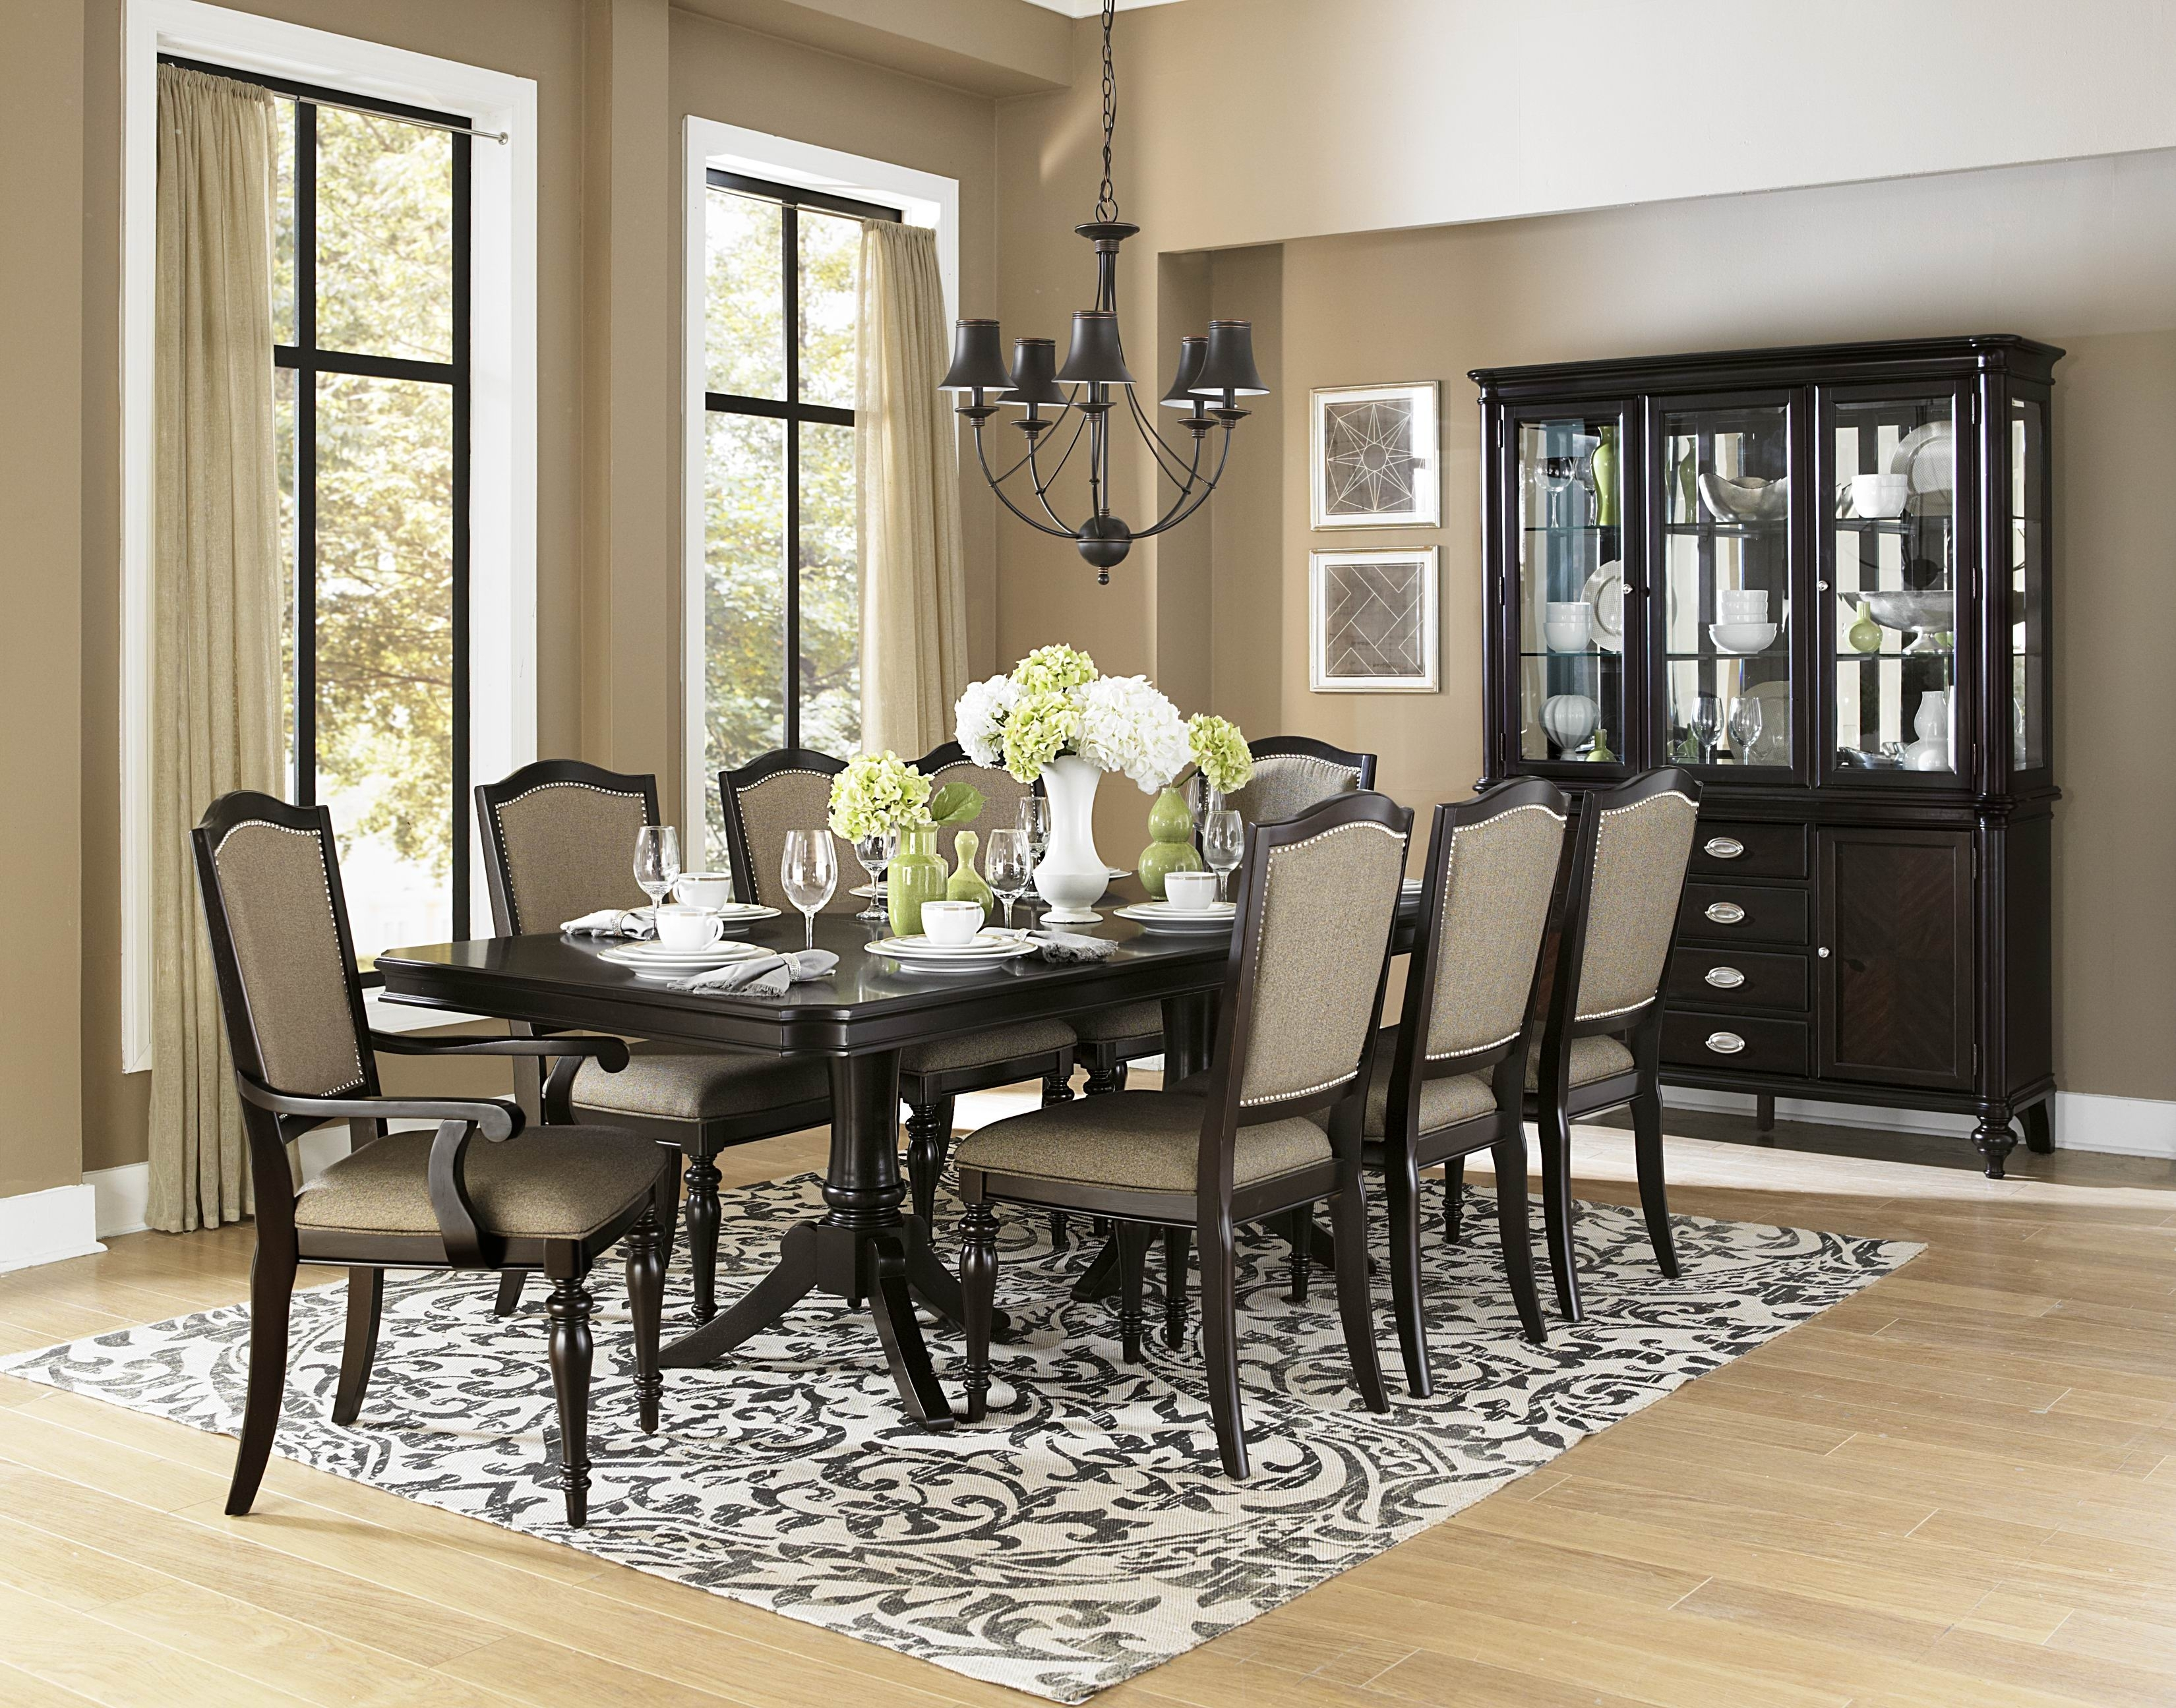 Dining Room Dining Room End Chairs Mission Dining Table Small Round Inside Latest Craftsman 5 Piece Round Dining Sets With Side Chairs (Image 8 of 20)